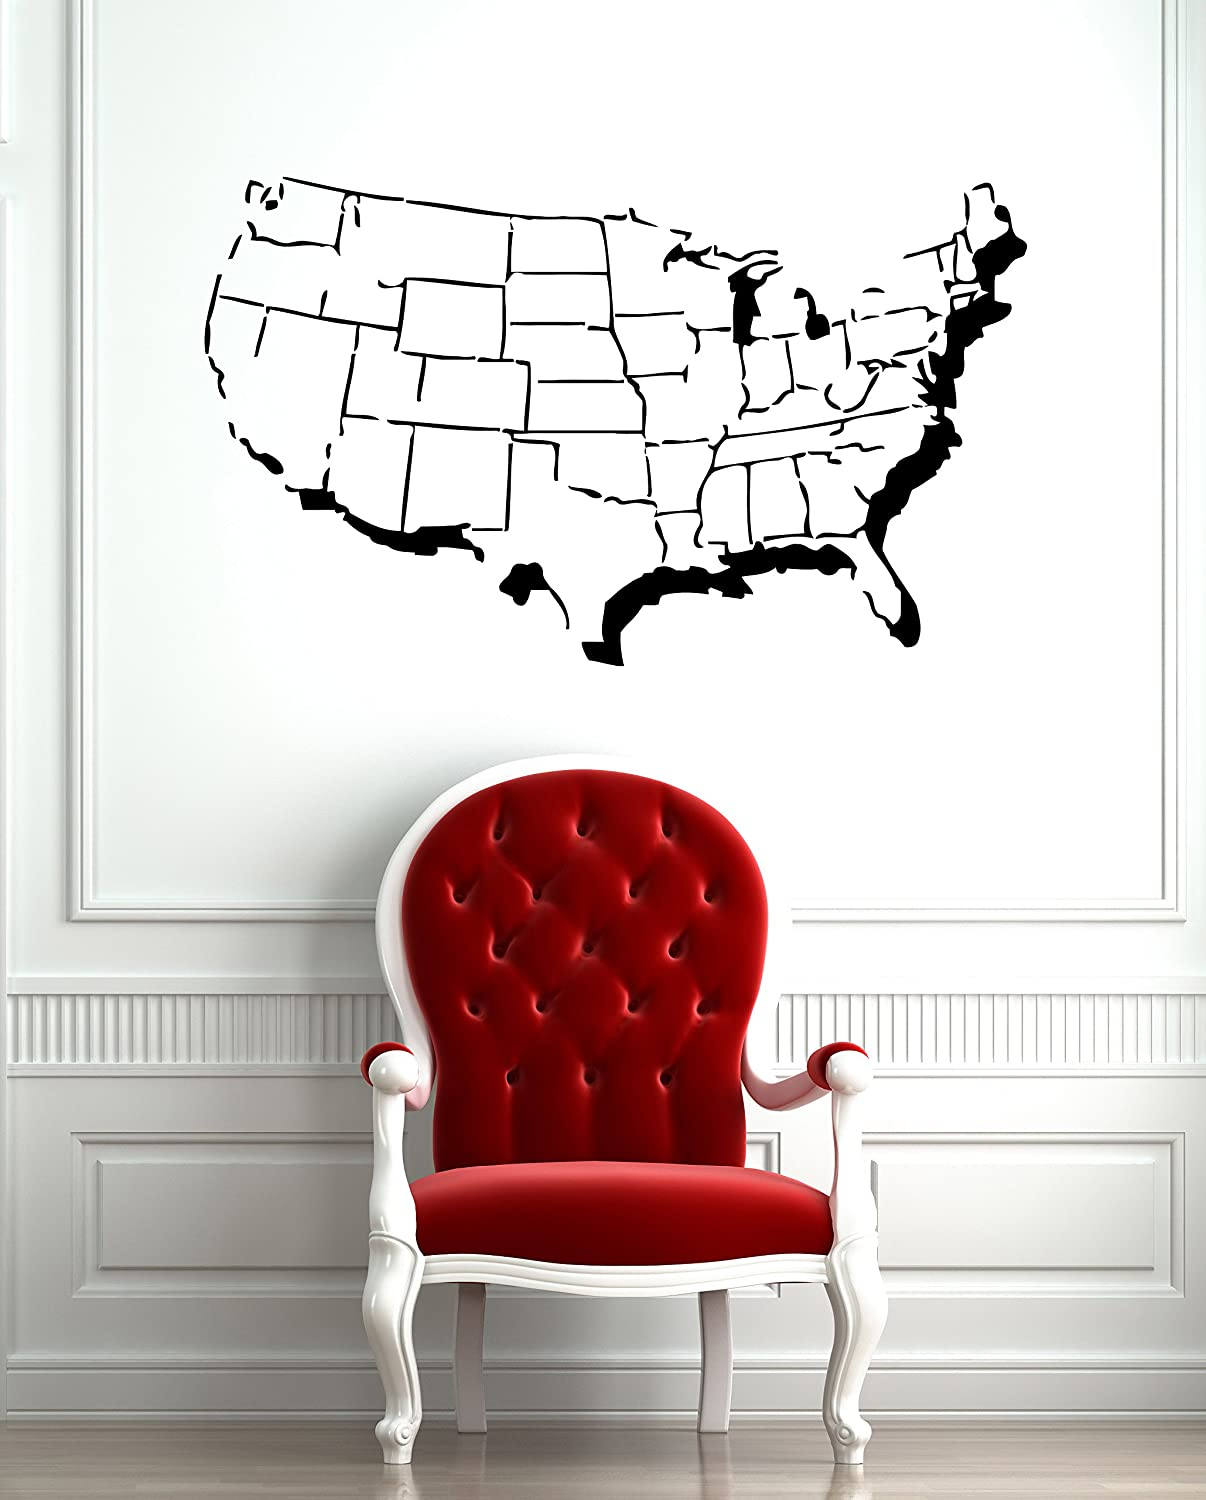 amazon com united states of america usa map with states outline amazon com united states of america usa map with states outline design wall mural vinyl decal sticker m305 22 5 in by 35 in home kitchen